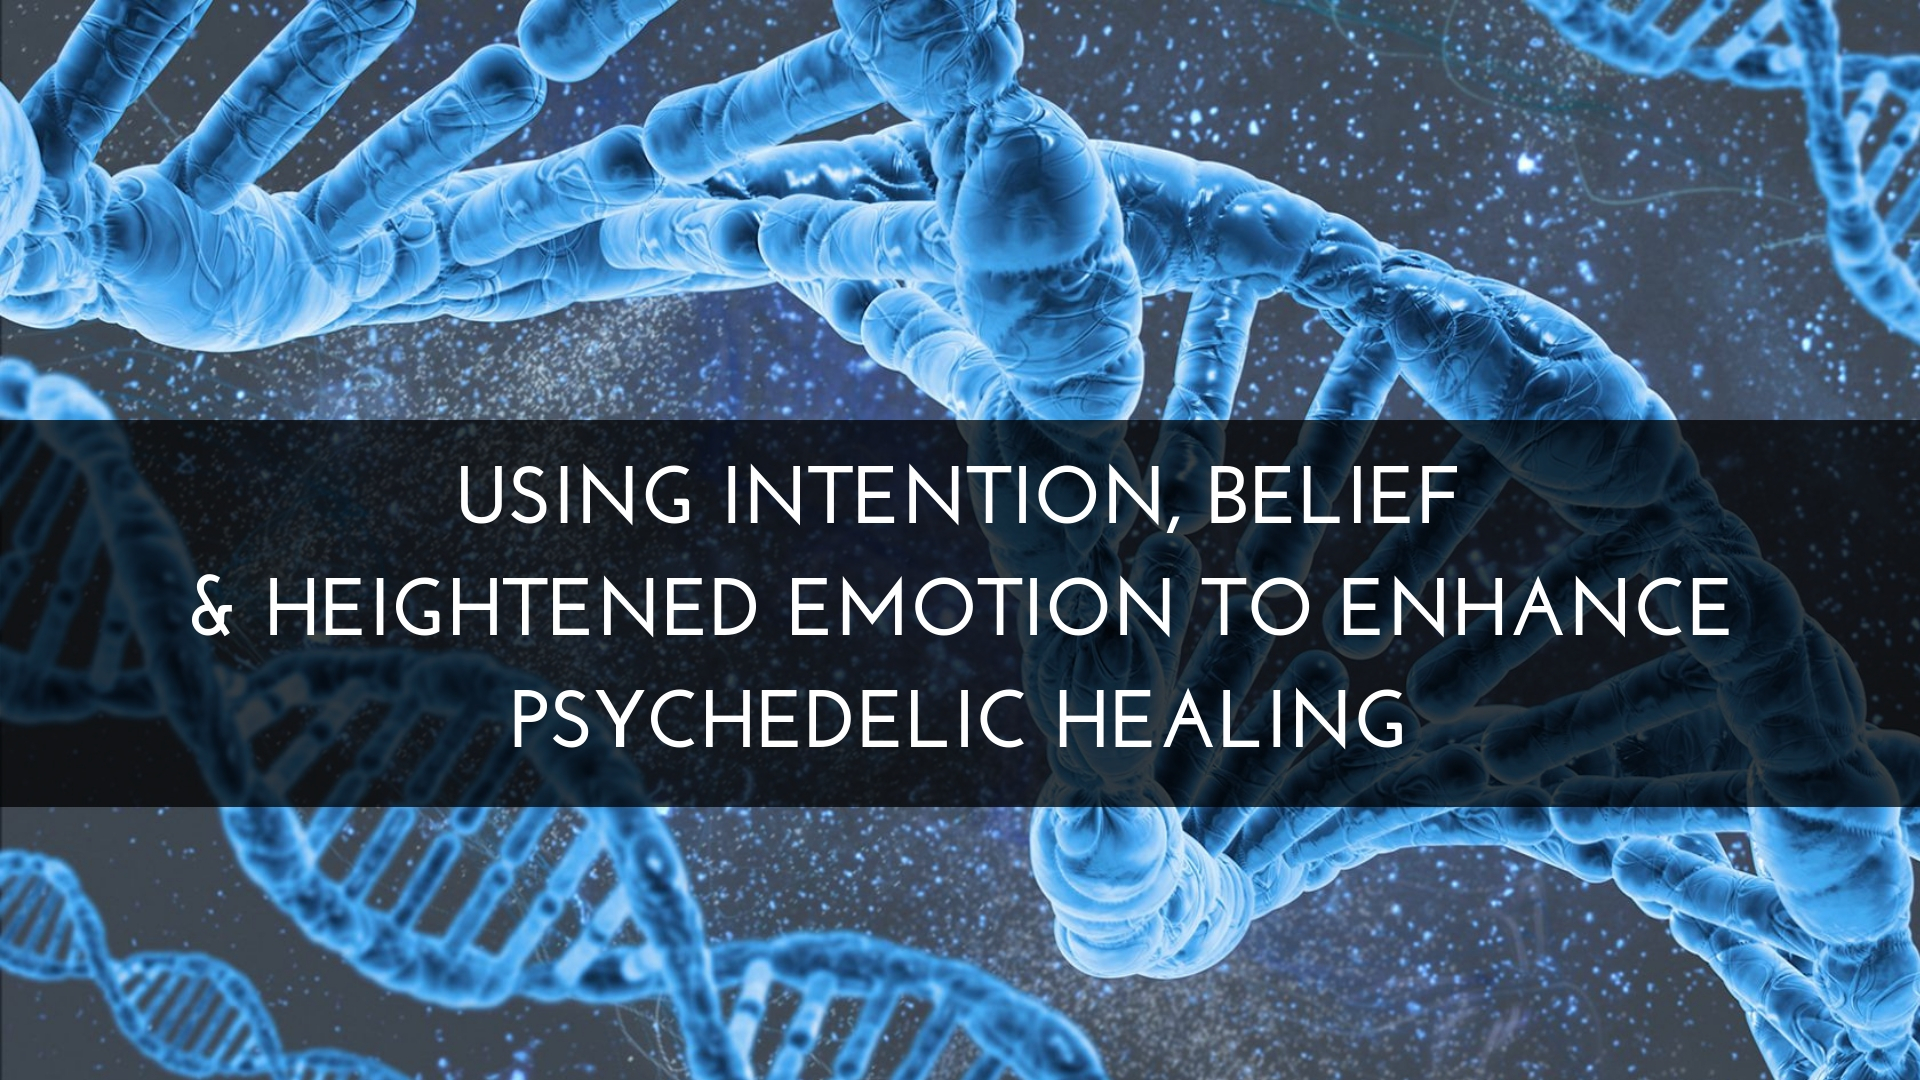 Using Intention, Belief and Heightened Emotion To Enhance Psychedelic Healing